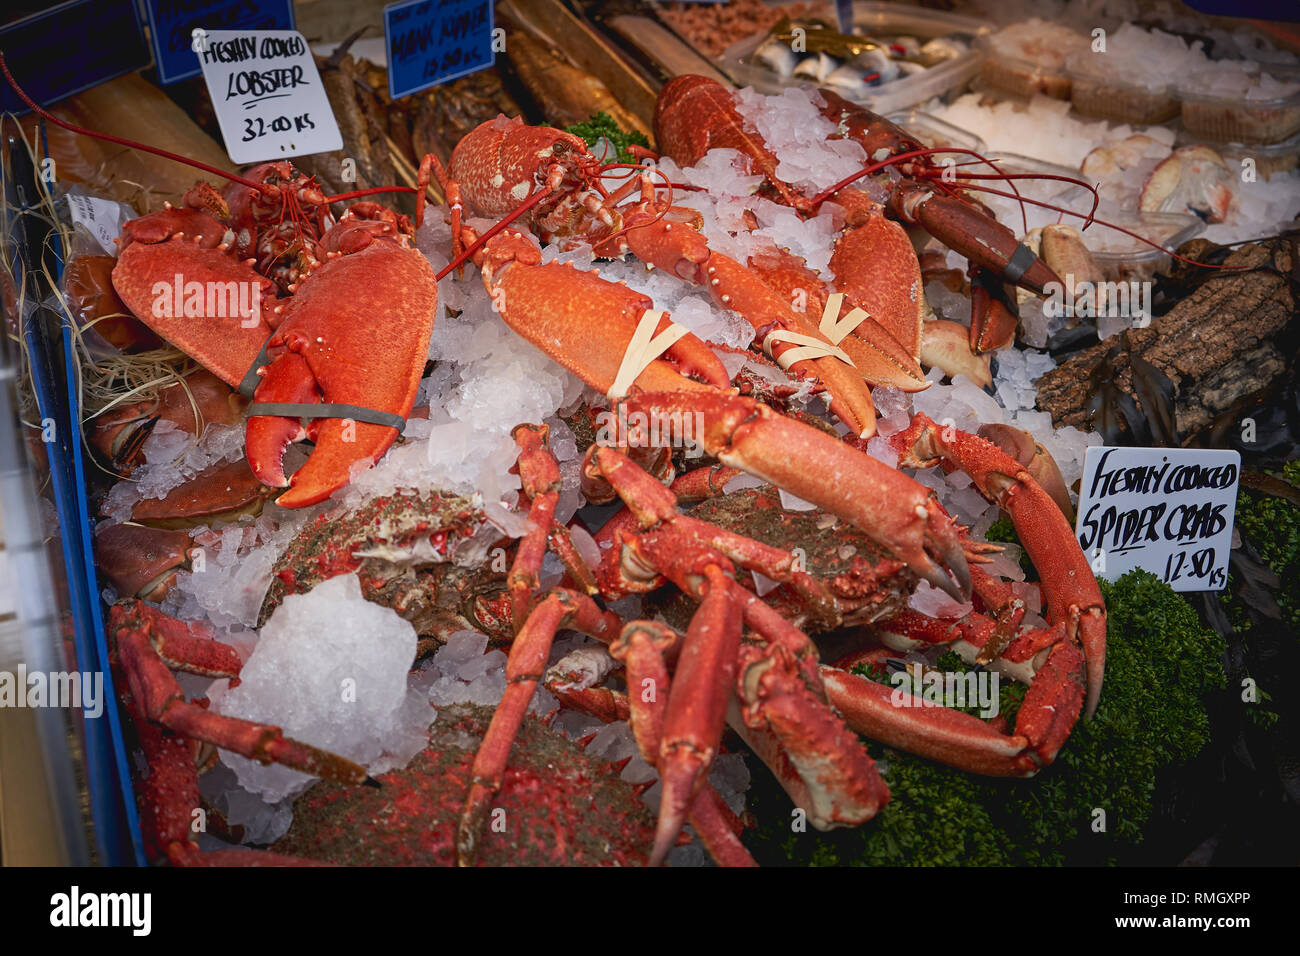 Shellfish including lobsters and crabs on sale at a fishmonger in a local food market. Landscape format. - Stock Image